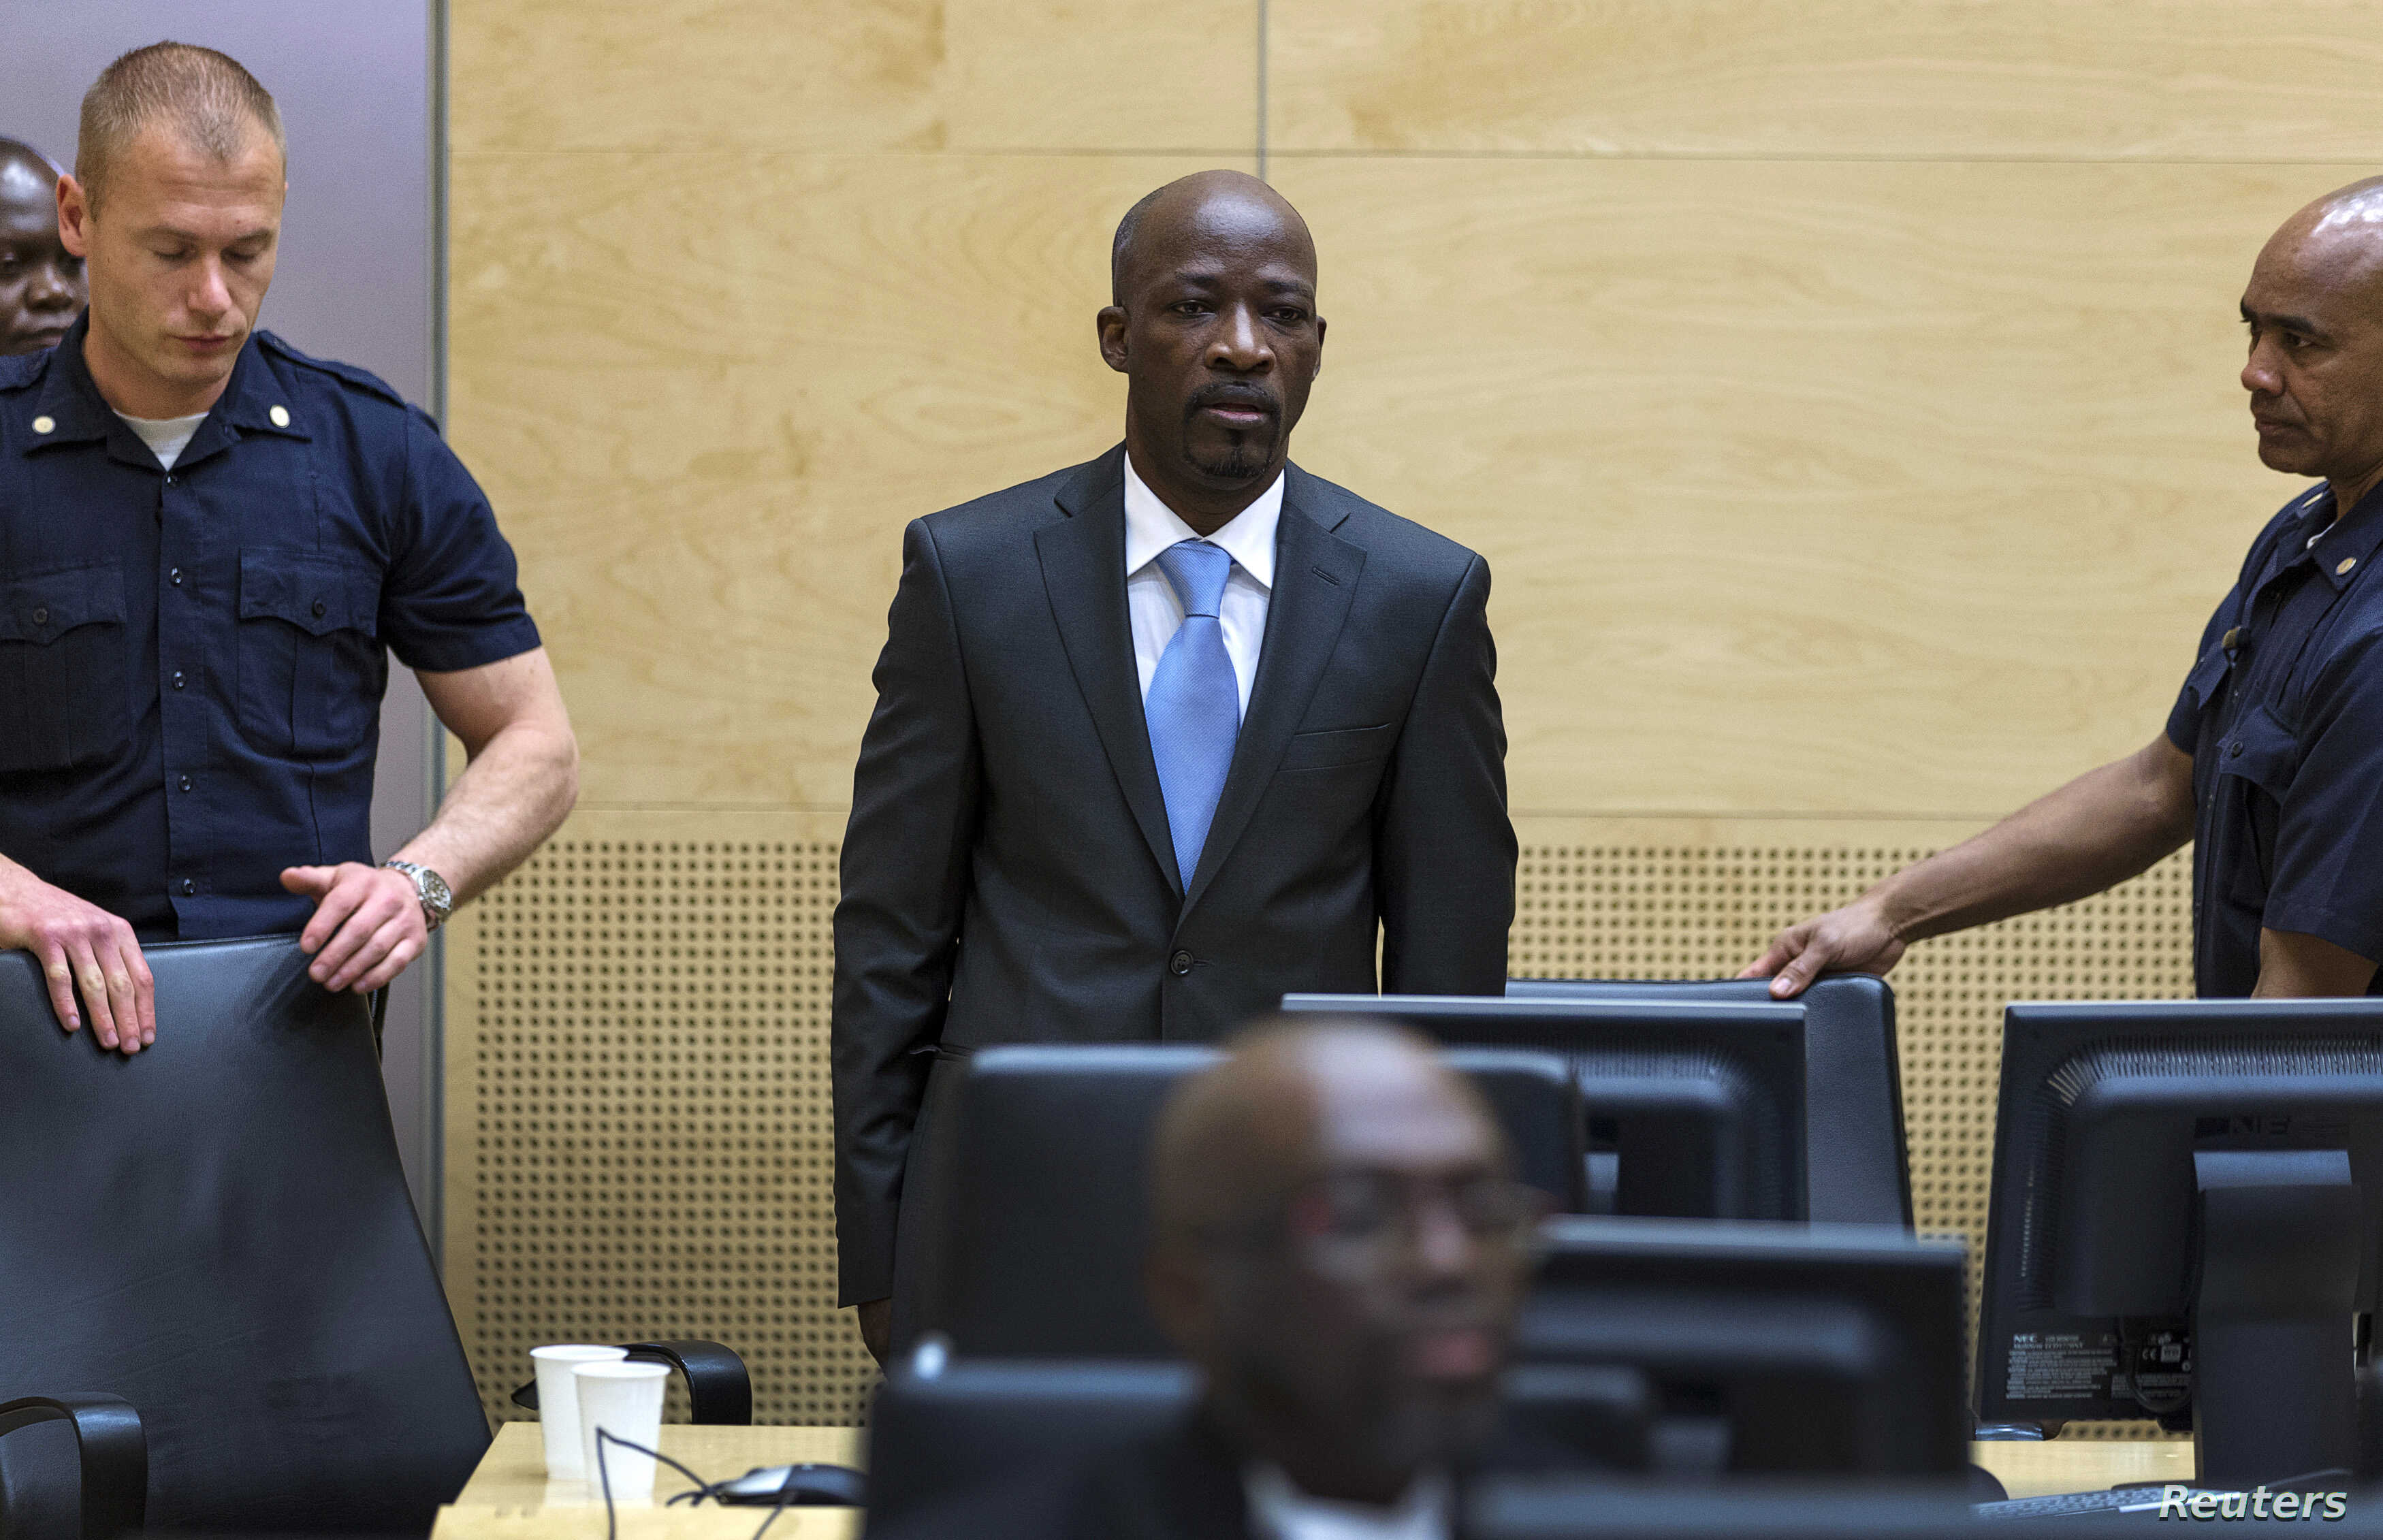 Charles Ble Goude of Ivory Coast enters the courtroom of the International Criminal Court (ICC) for his initial appearance in The Hague, Netherlands, March 27, 2014.